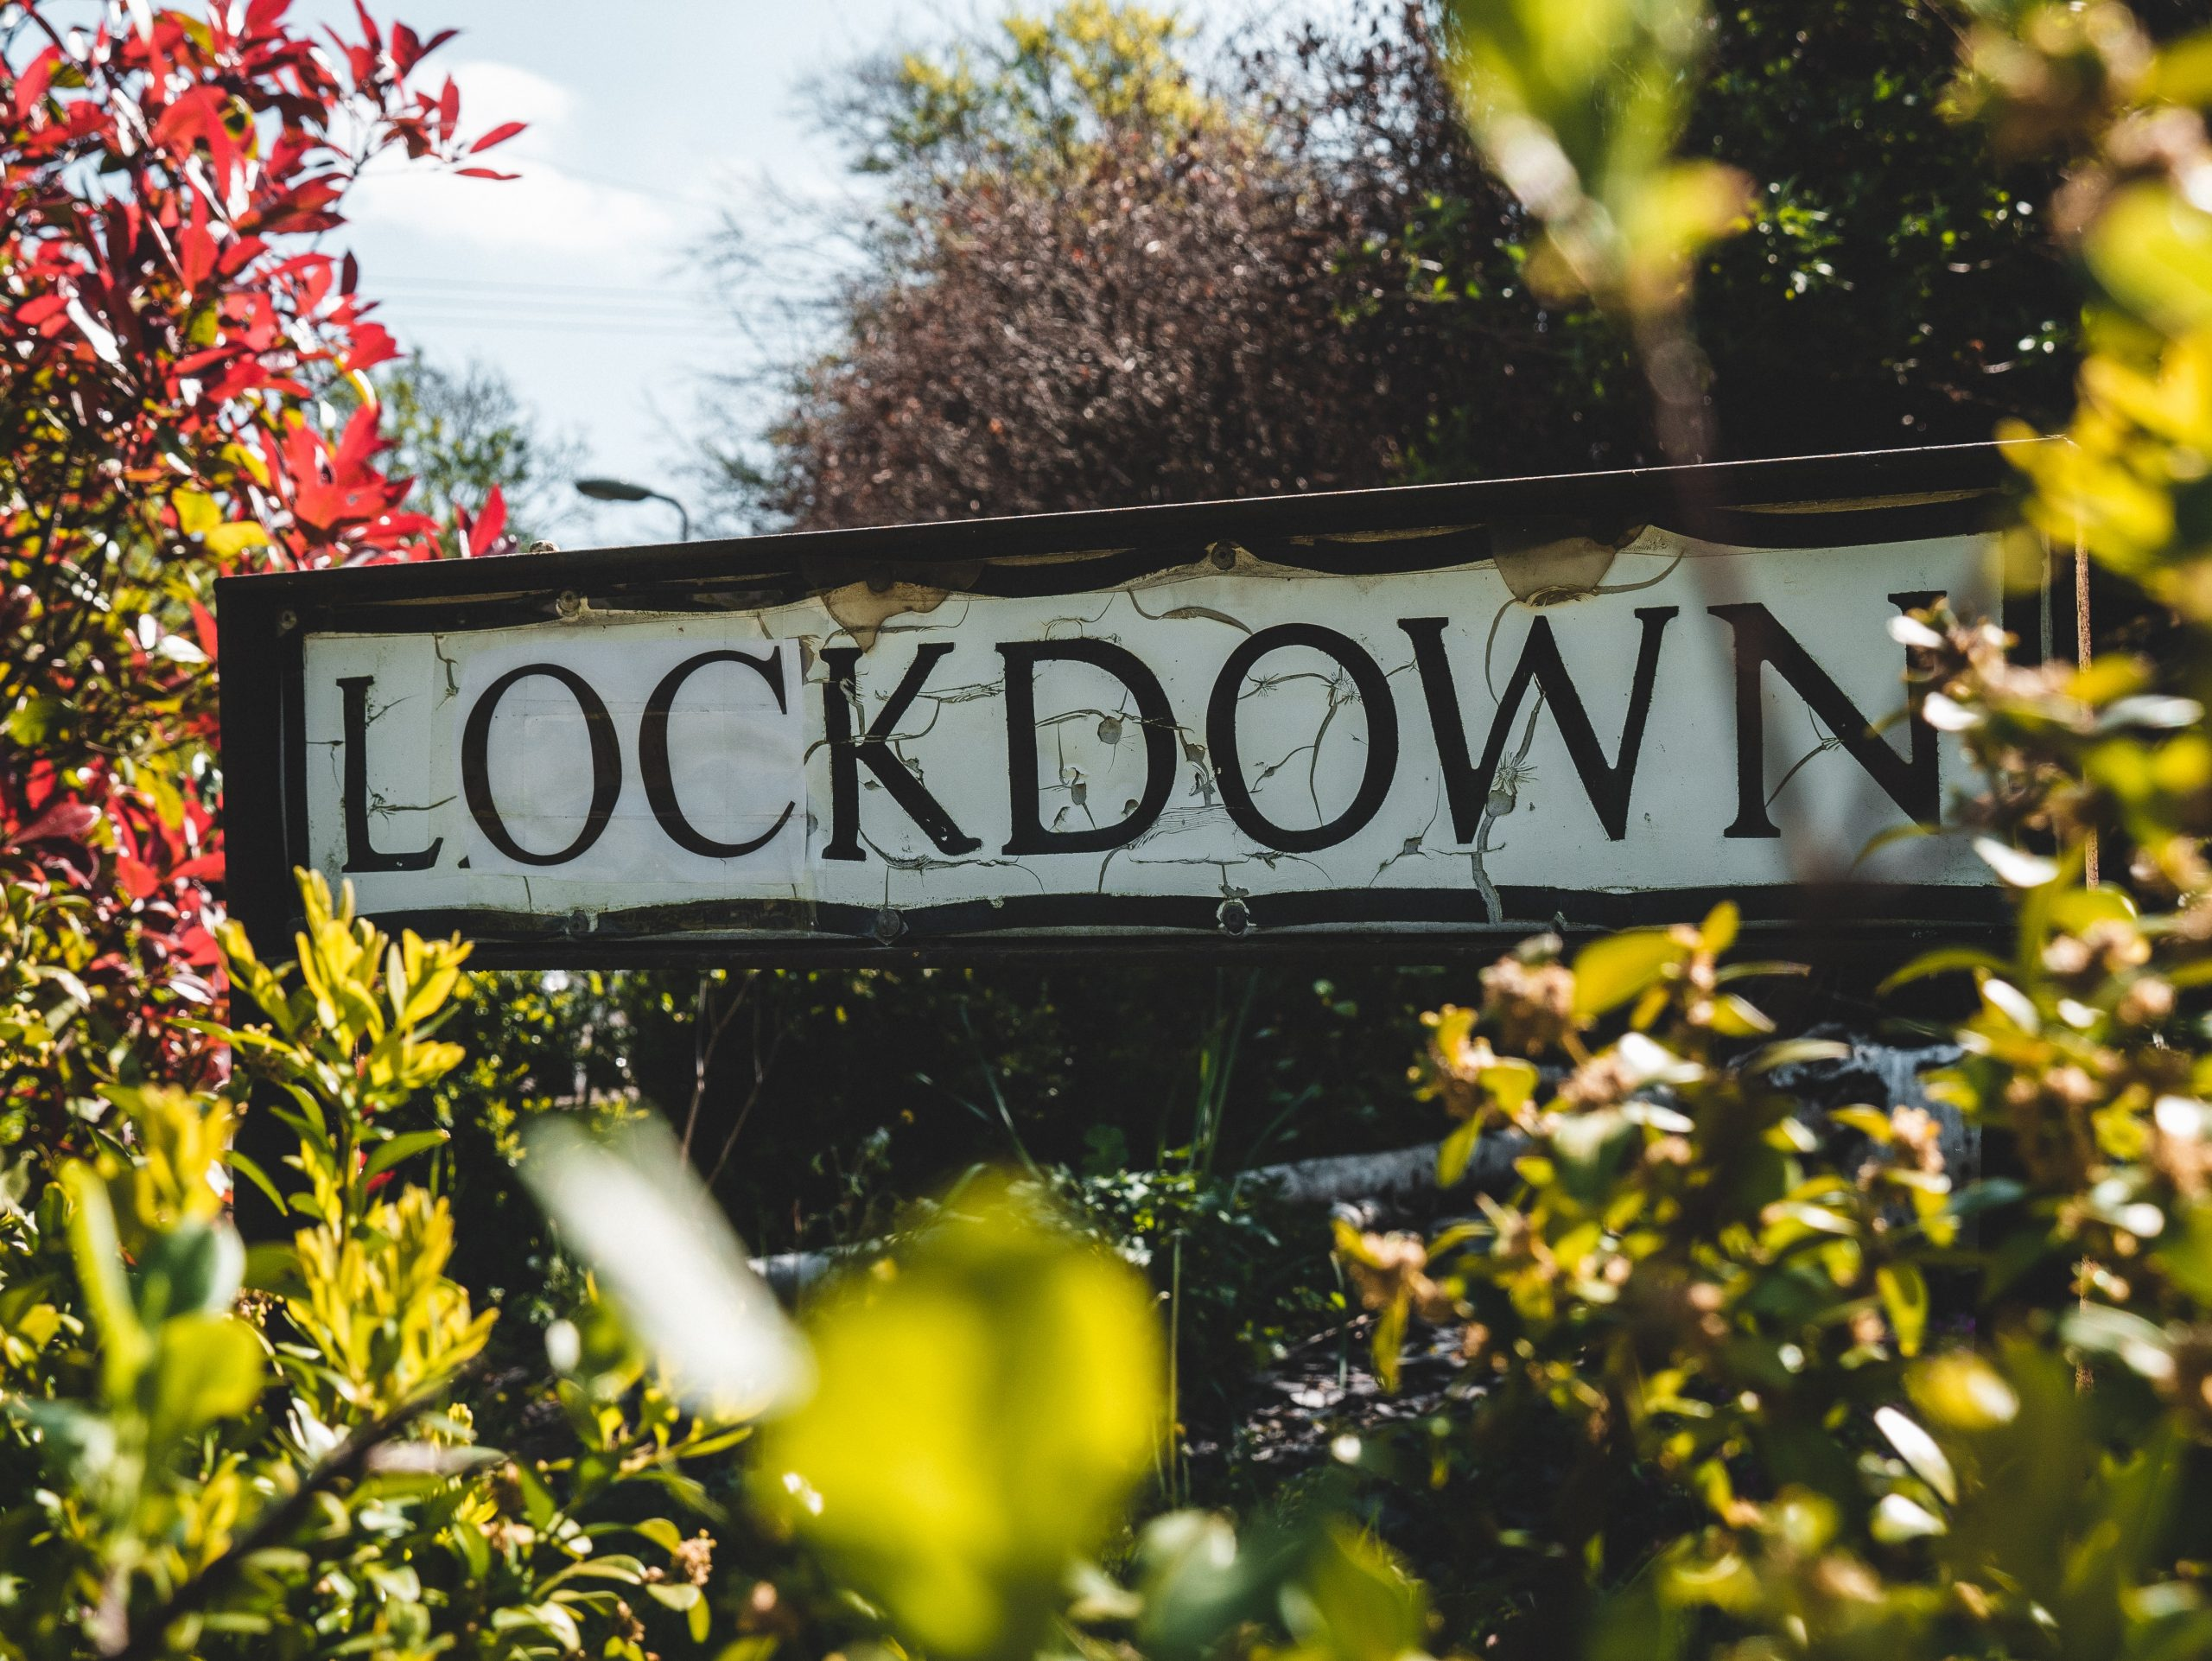 """A classic British street sign reads """"lockdown"""" in black lettering. It is nestled between some greenery."""